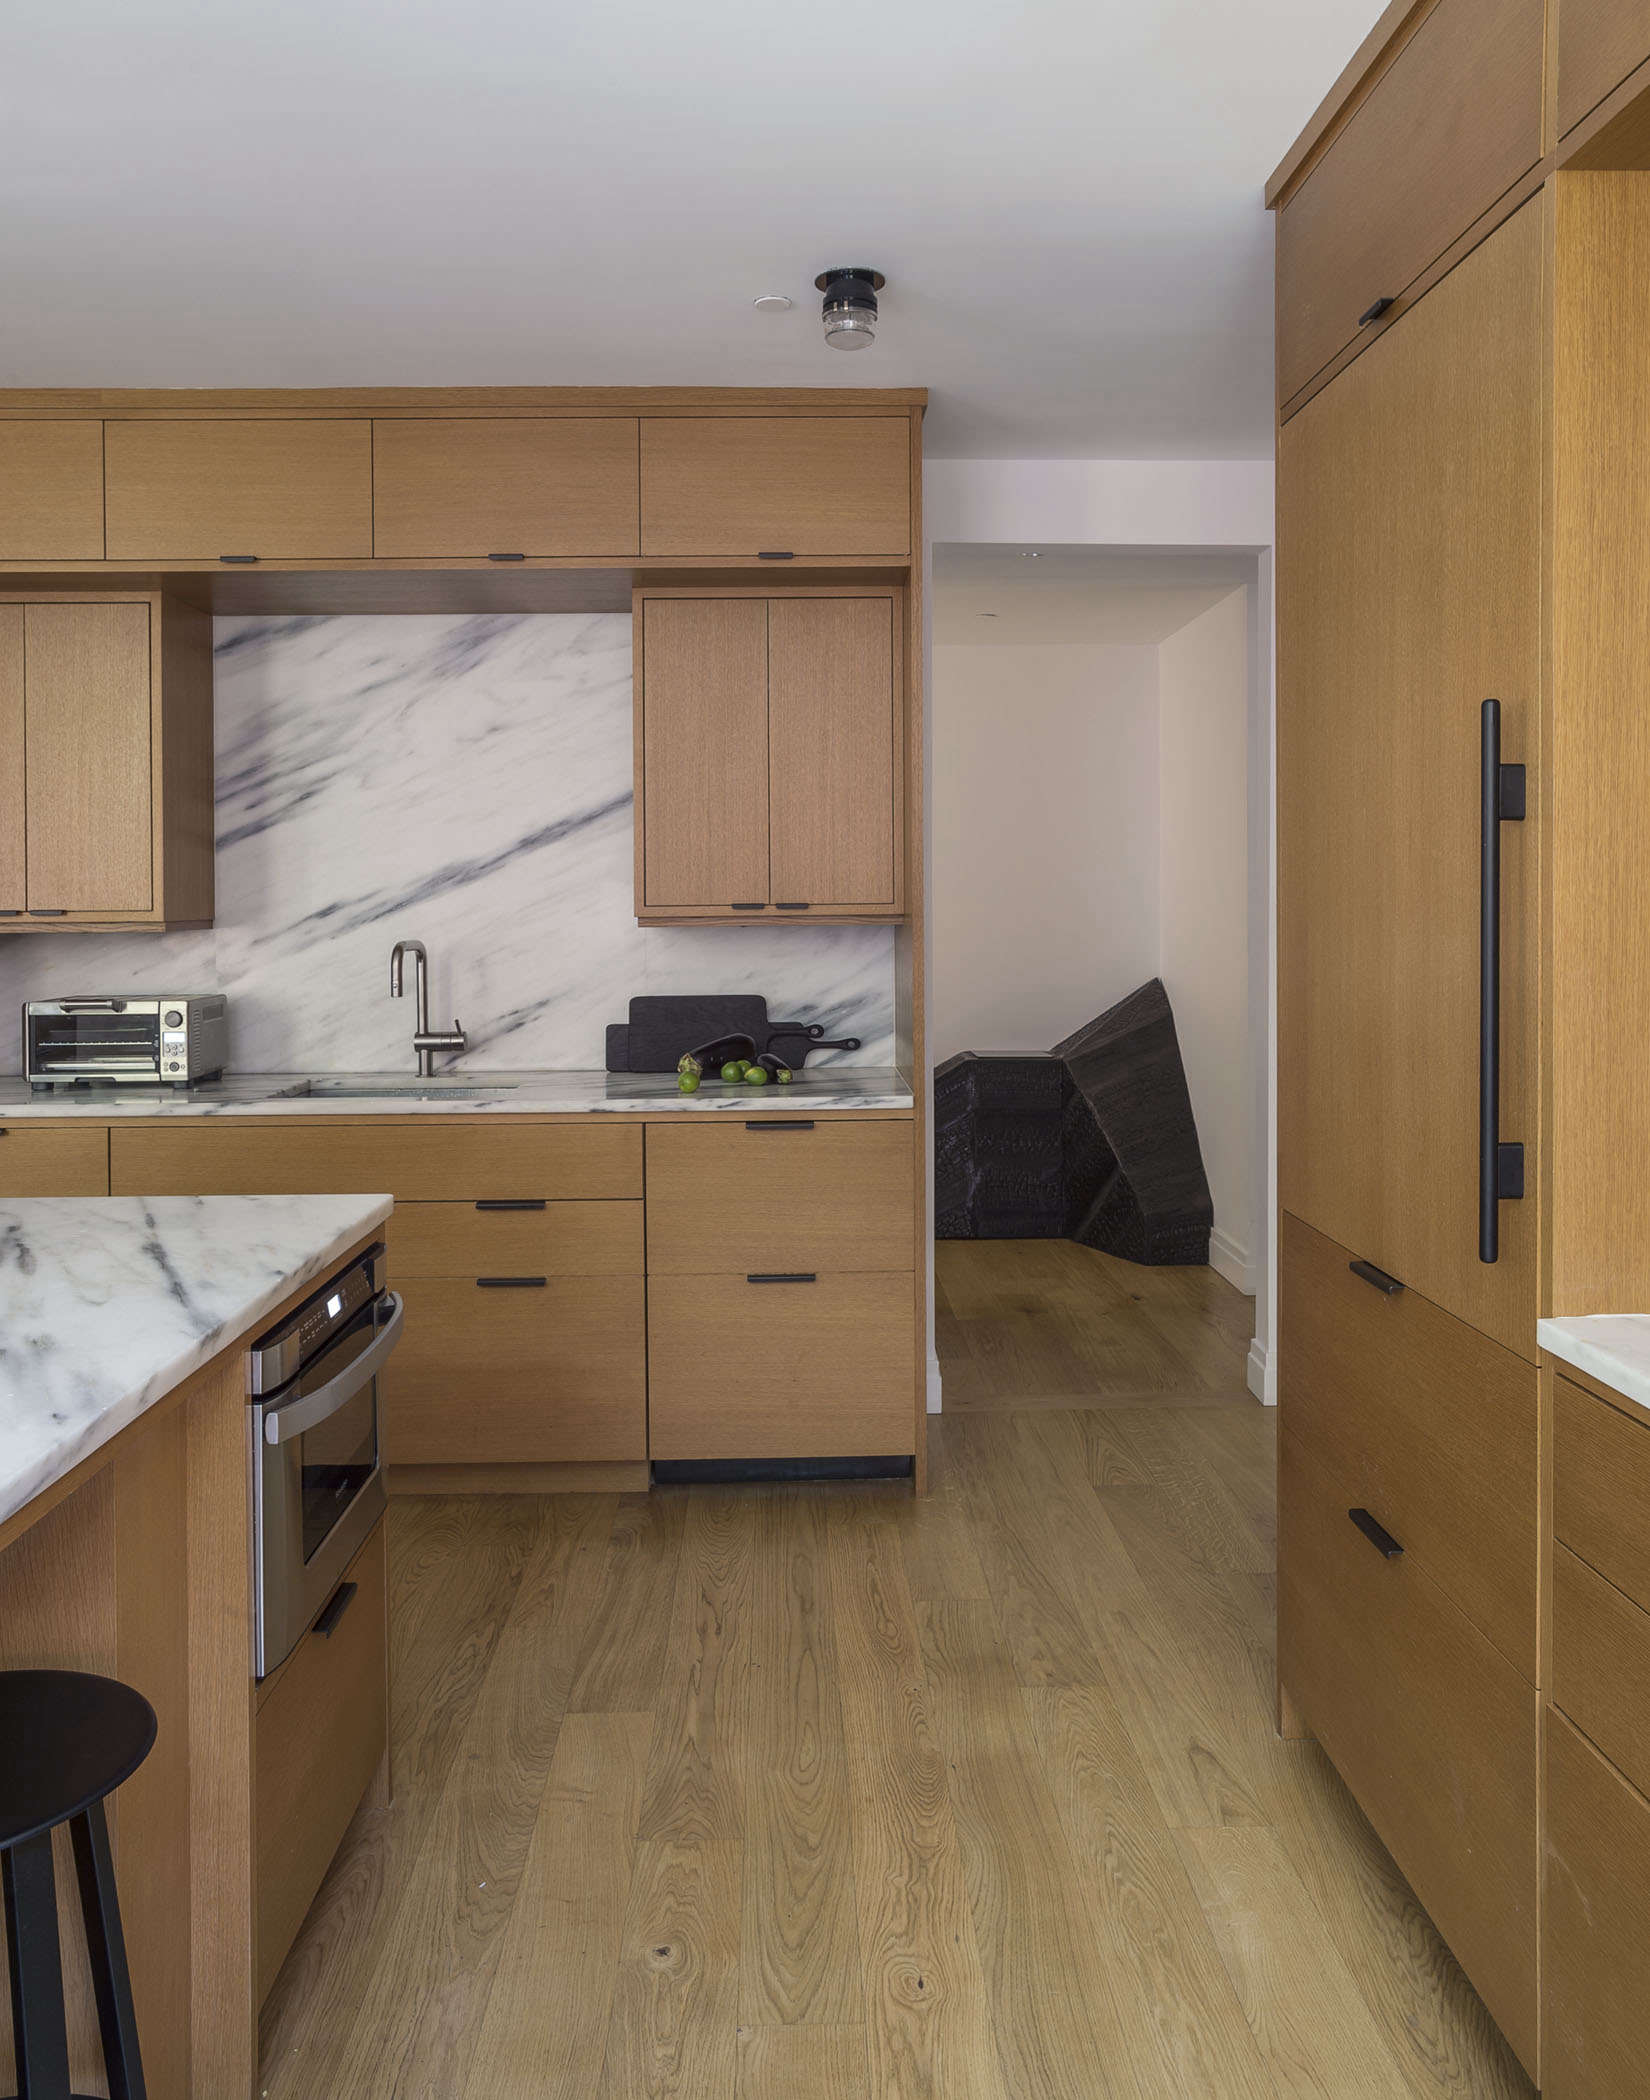 Oak kitchen cabinetry with marble counters and backsplash in NYC apt, Matthew Williams-photo | Remodelista